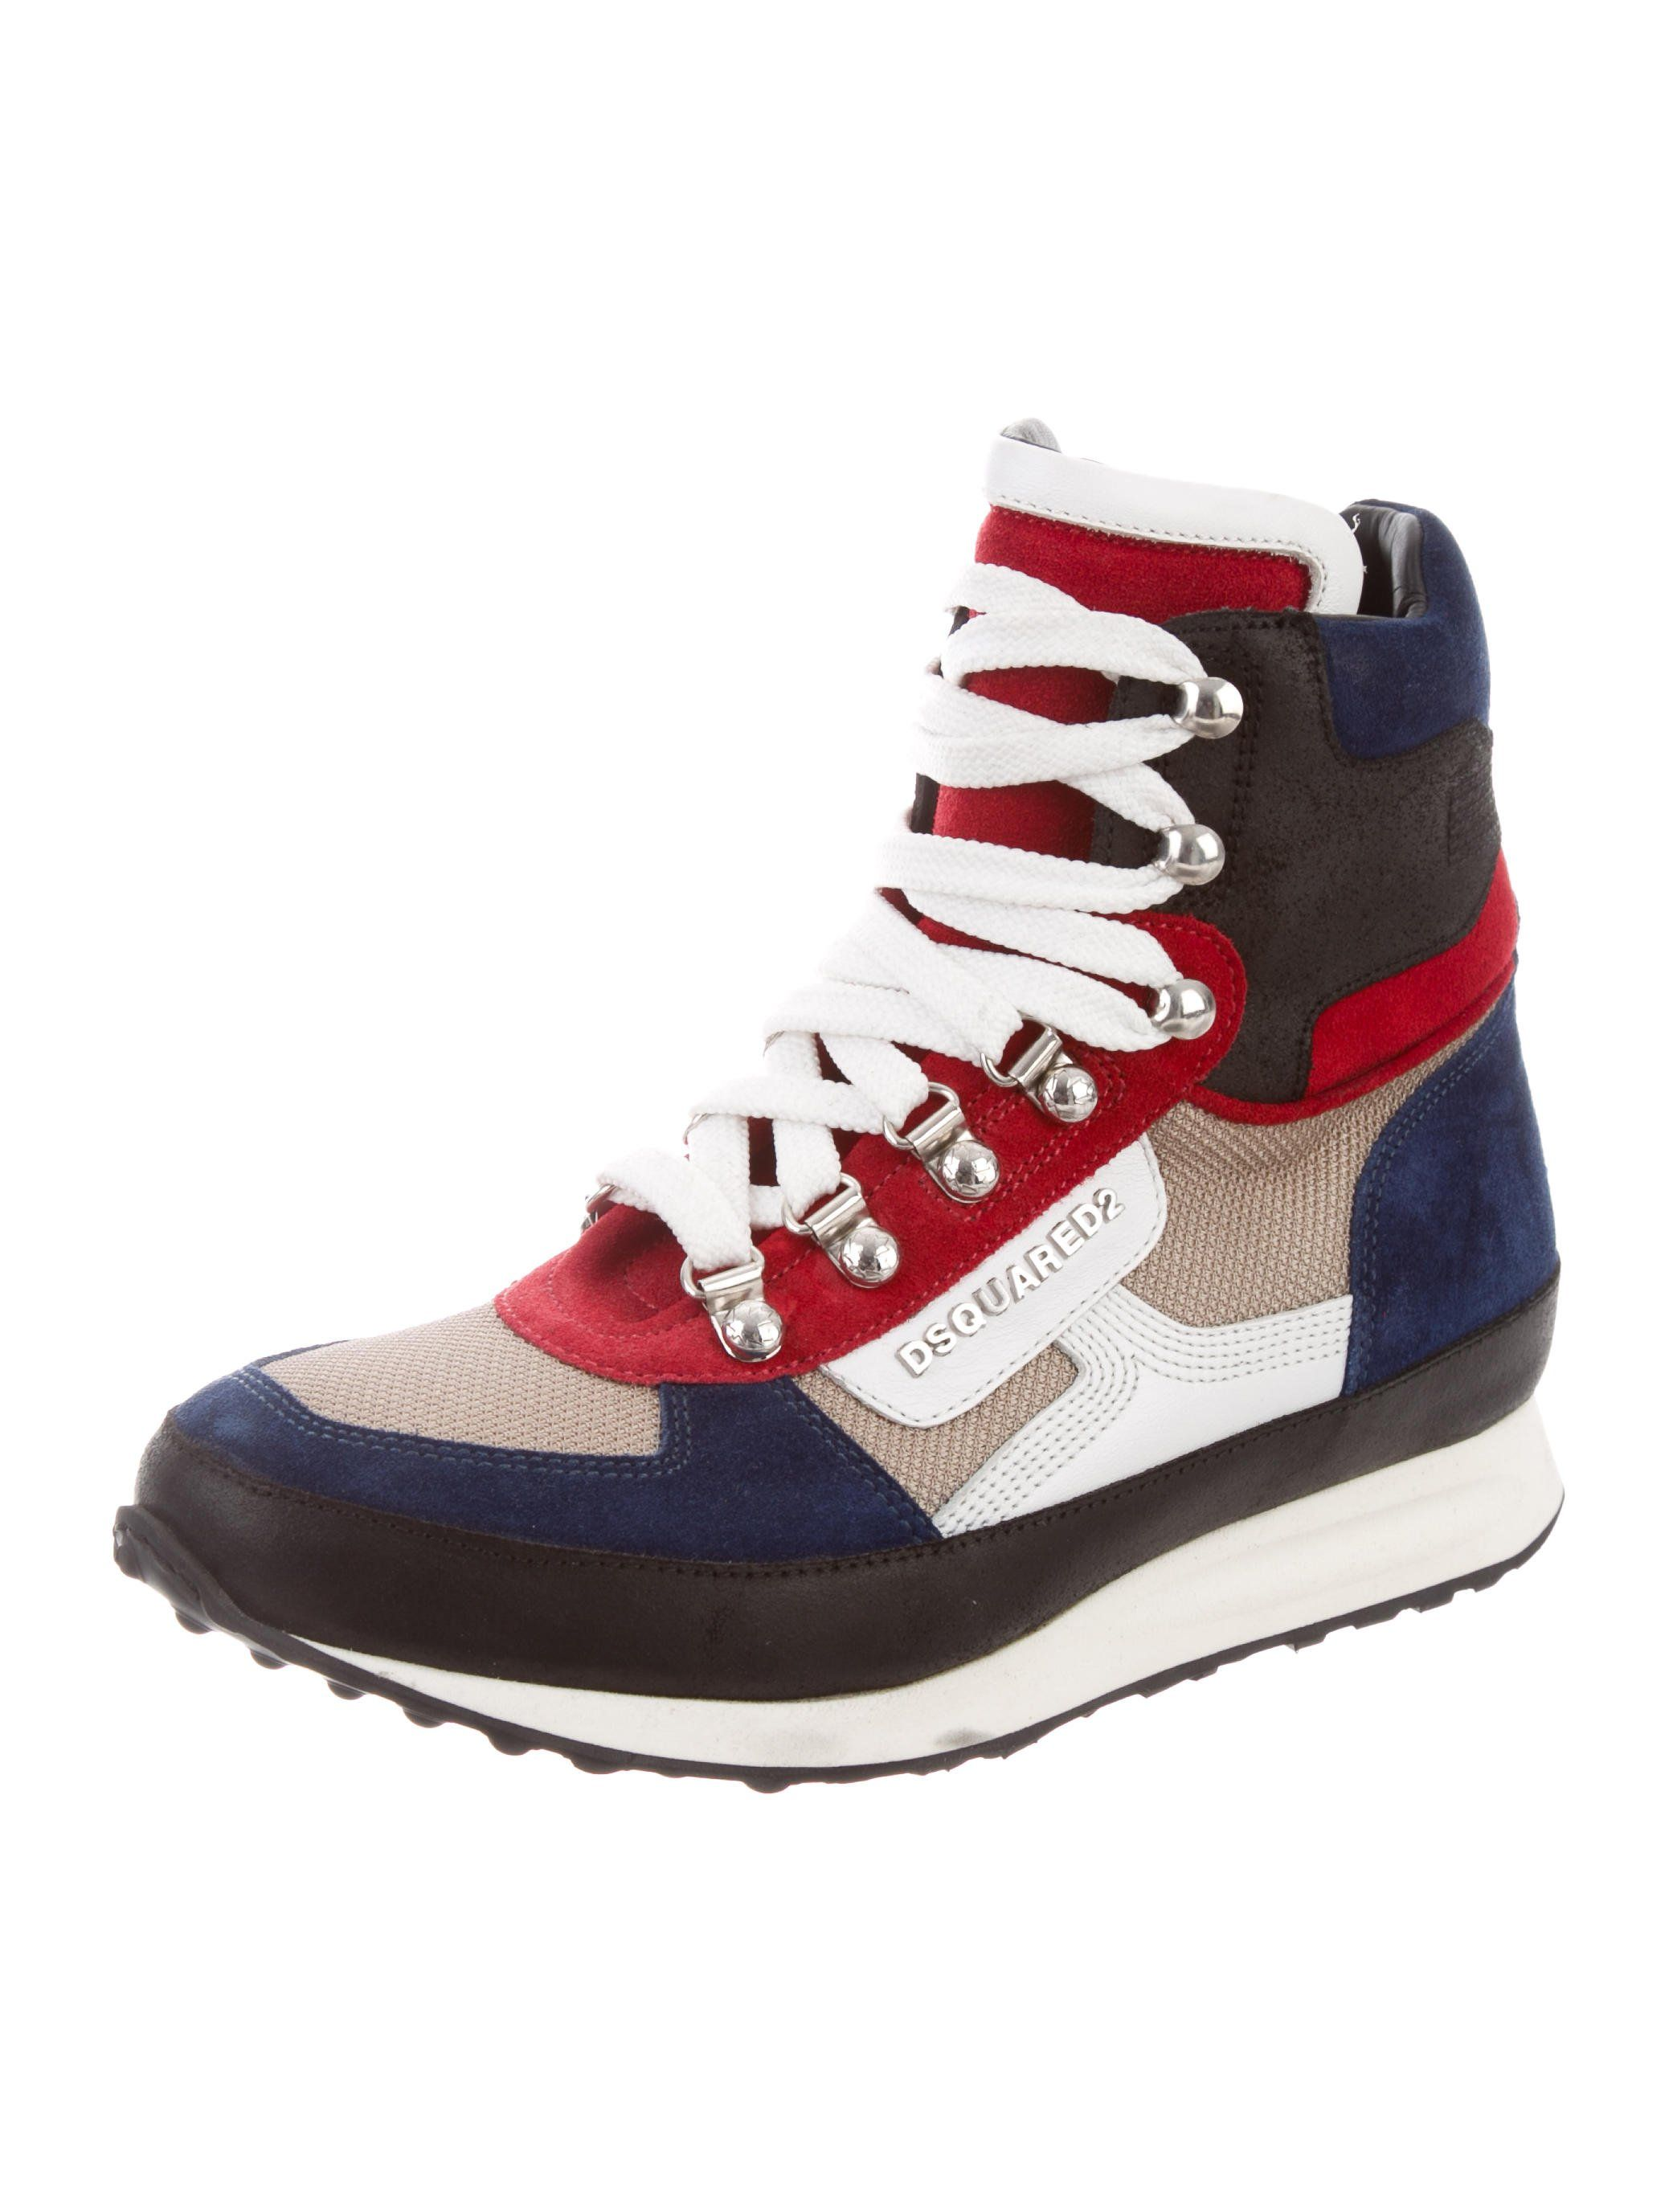 096a2d1e20d9 Multicolored suede Dsquared2 high-top sneakers with tonal stitching  throughout